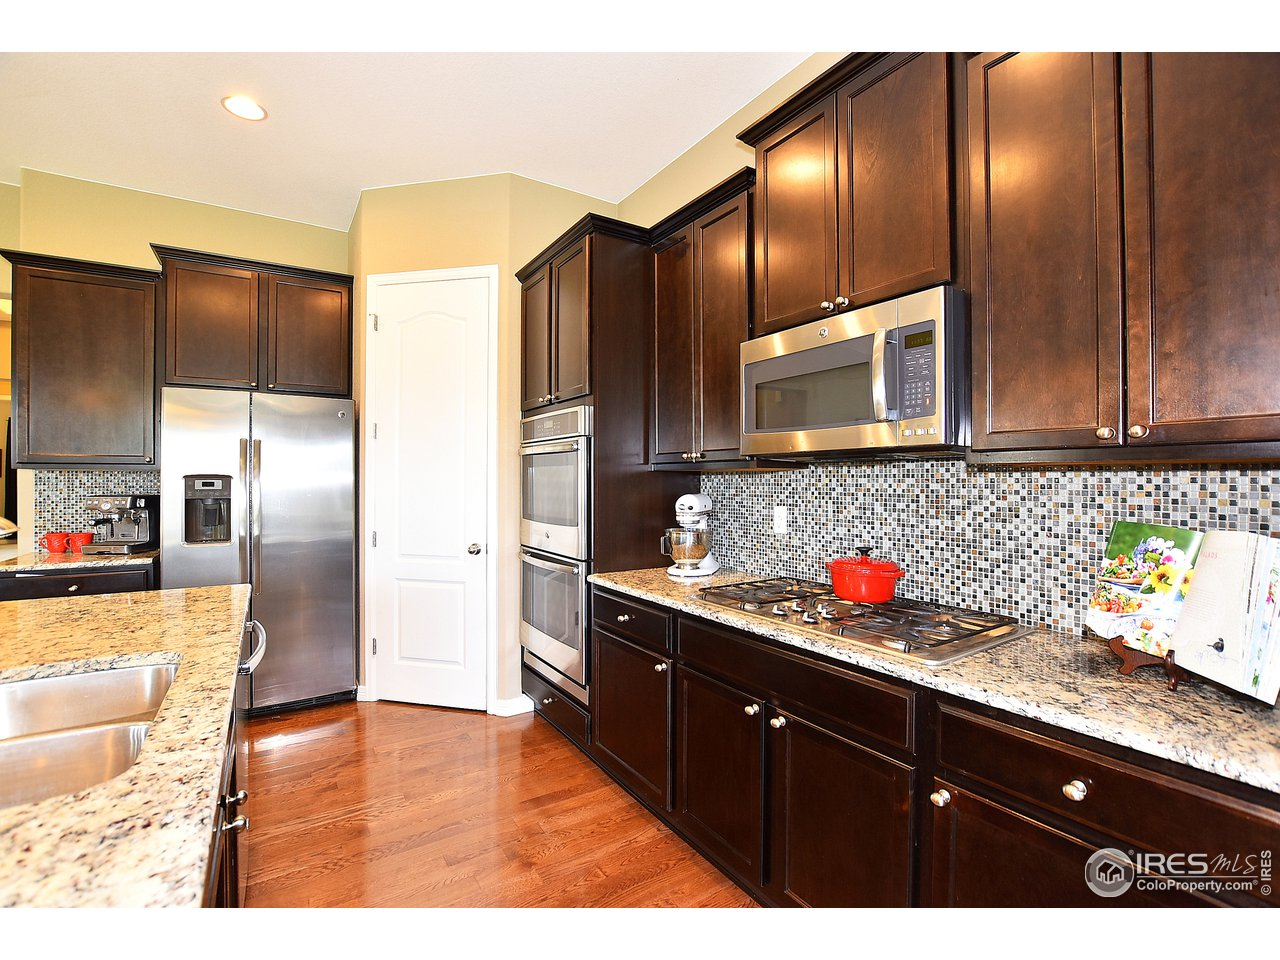 Kitchen features walk-in pantry & double ovens.